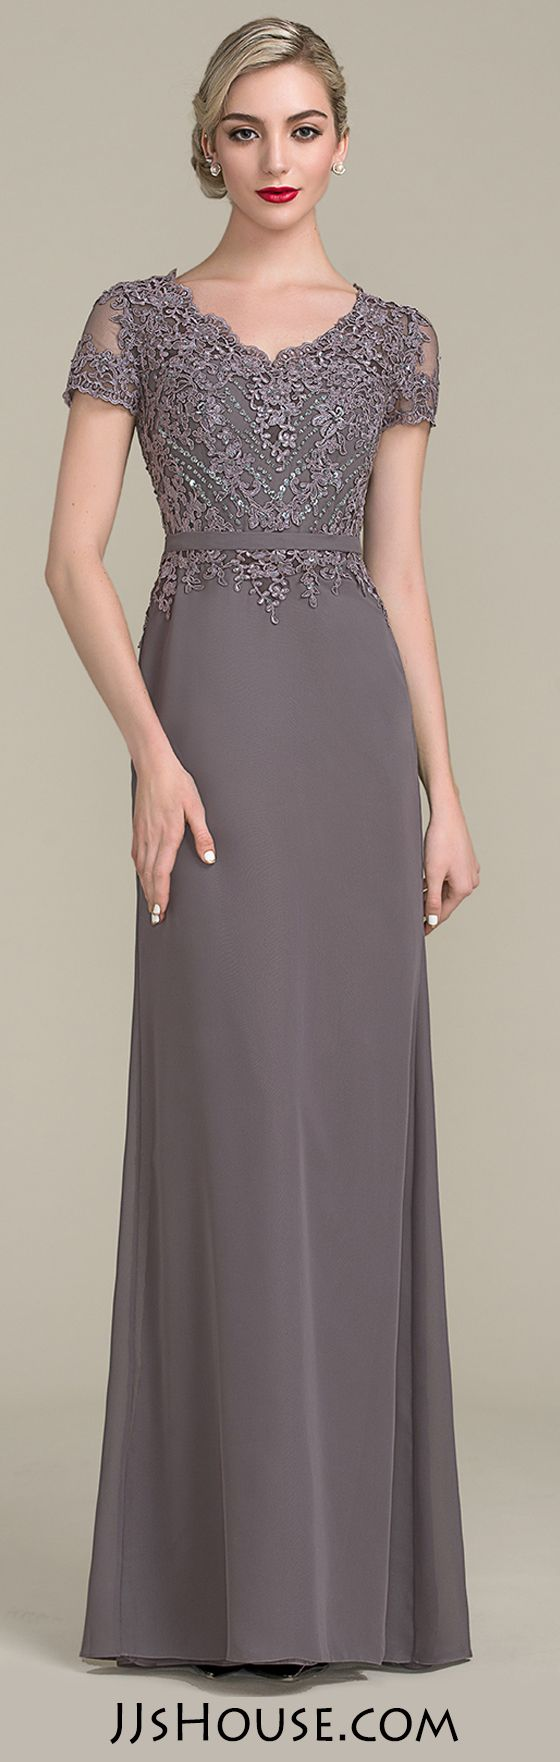 A Line Princess V Neck Floor Length Chiffon Lace Mother Of The Bride Dress With Beading Sequins In Slate Grey